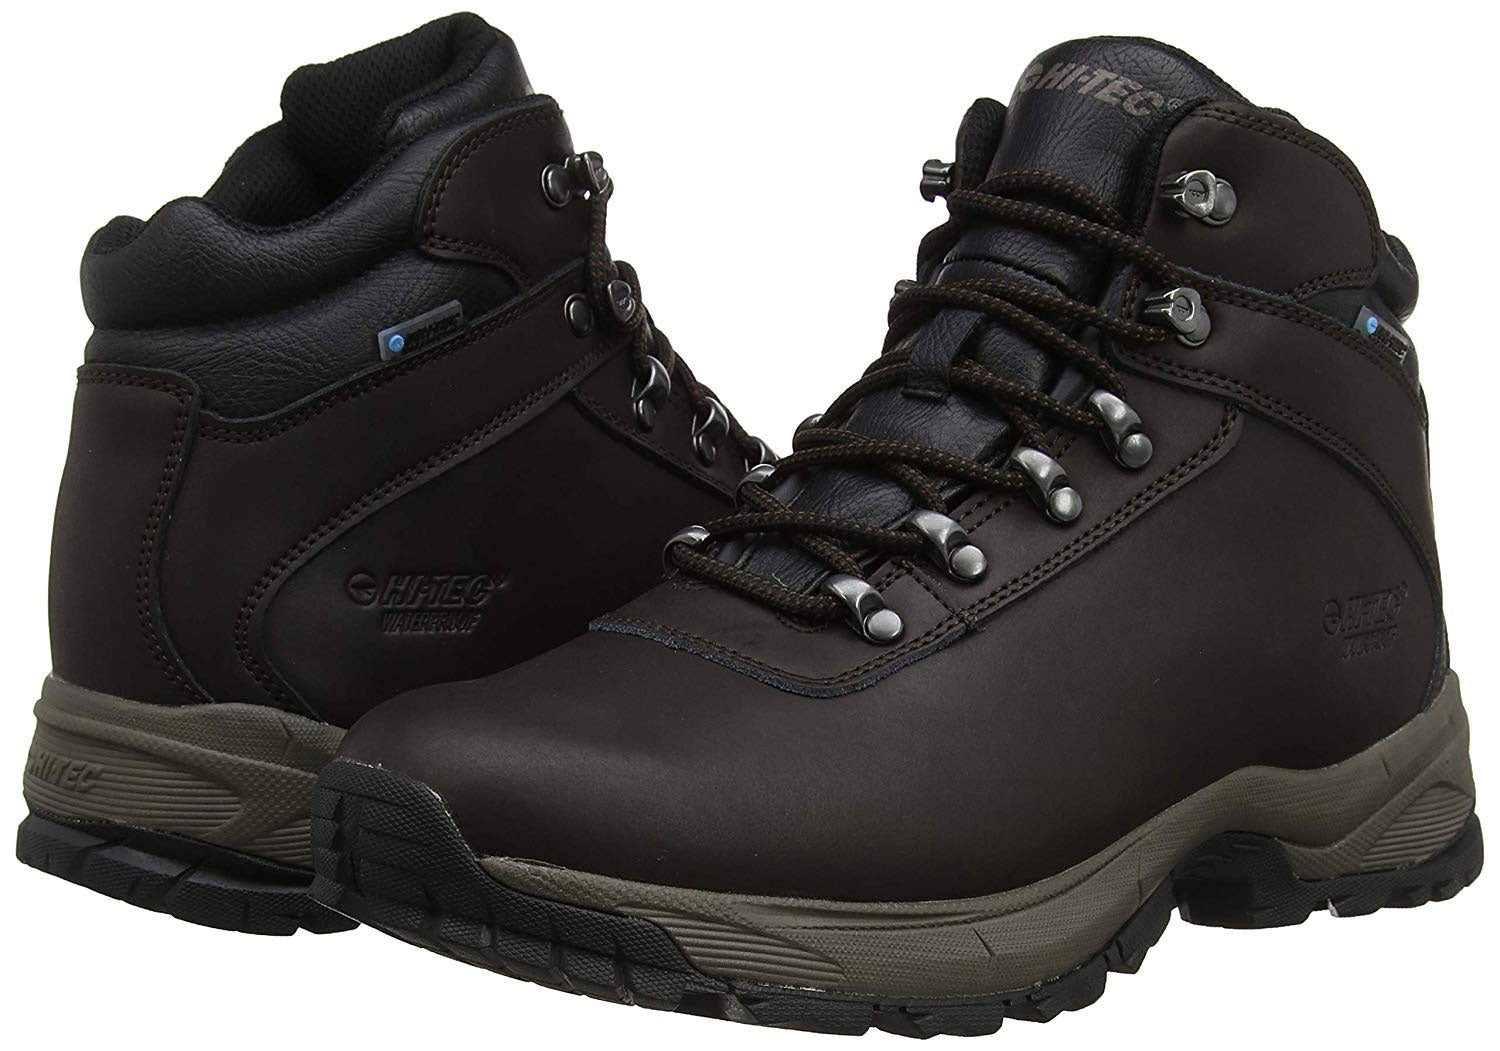 Chocolate Leather ladies hiking boots hiTec